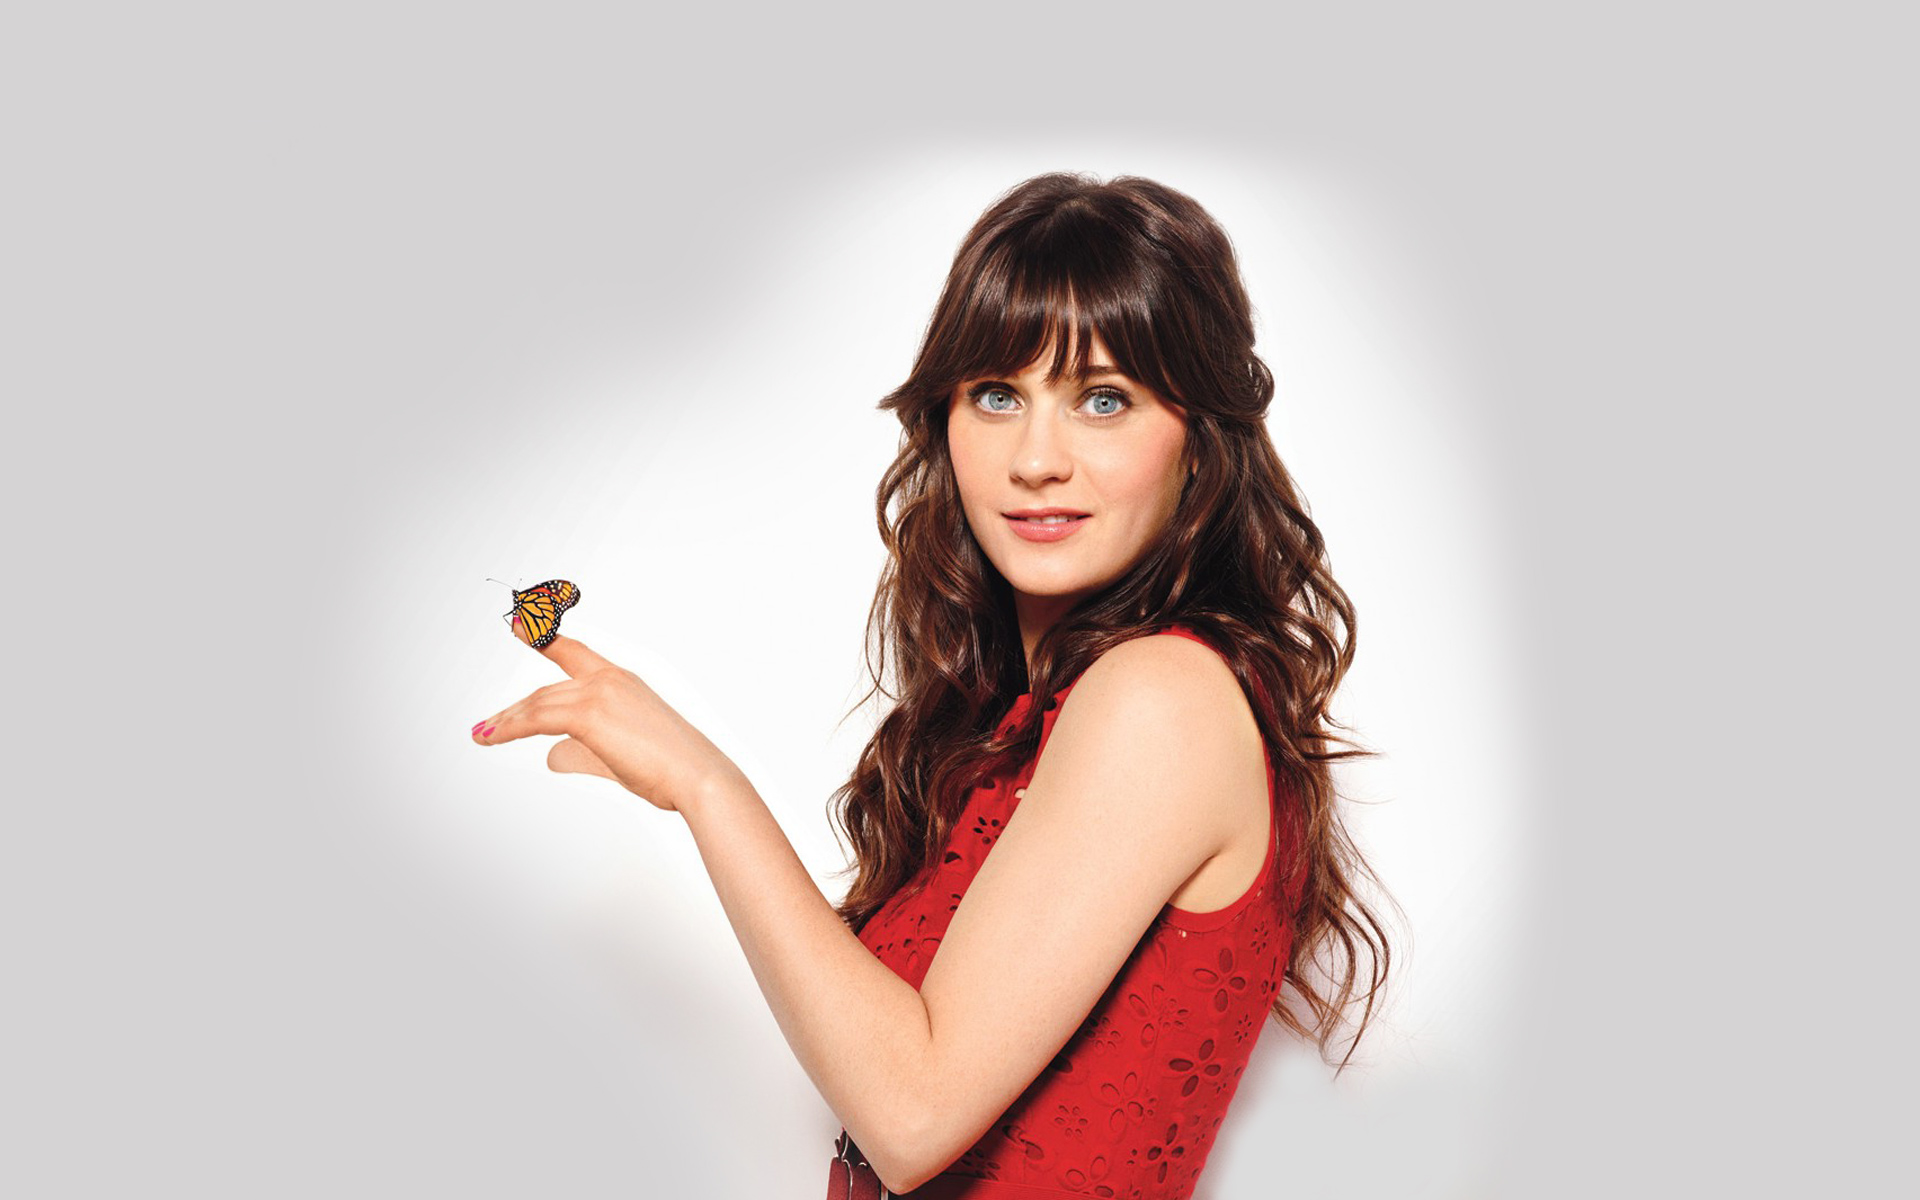 ... is complete, you can set Zooey Deschanel 6170 as your background